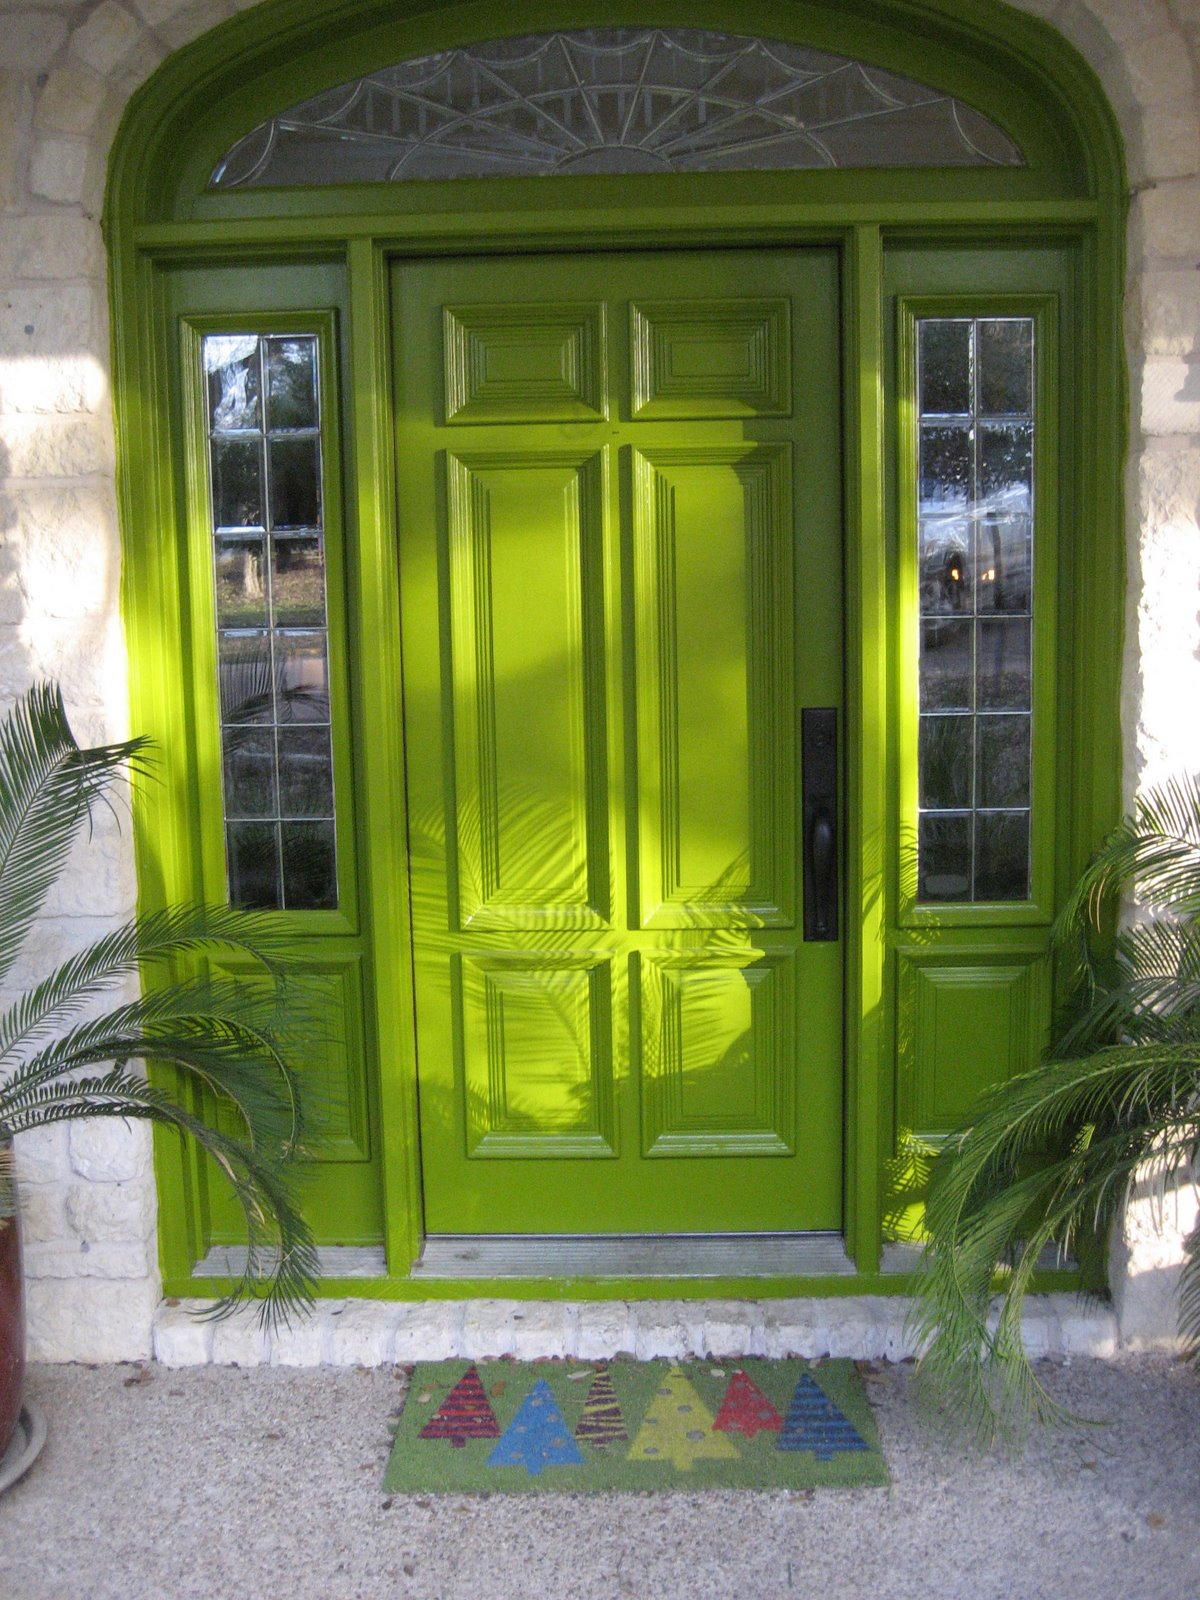 1600 #9CB516 DIY Fall Spruce Up Of Your Front Door With Color #DIY Cre8tive  picture/photo Front Doors Pictures 40791200